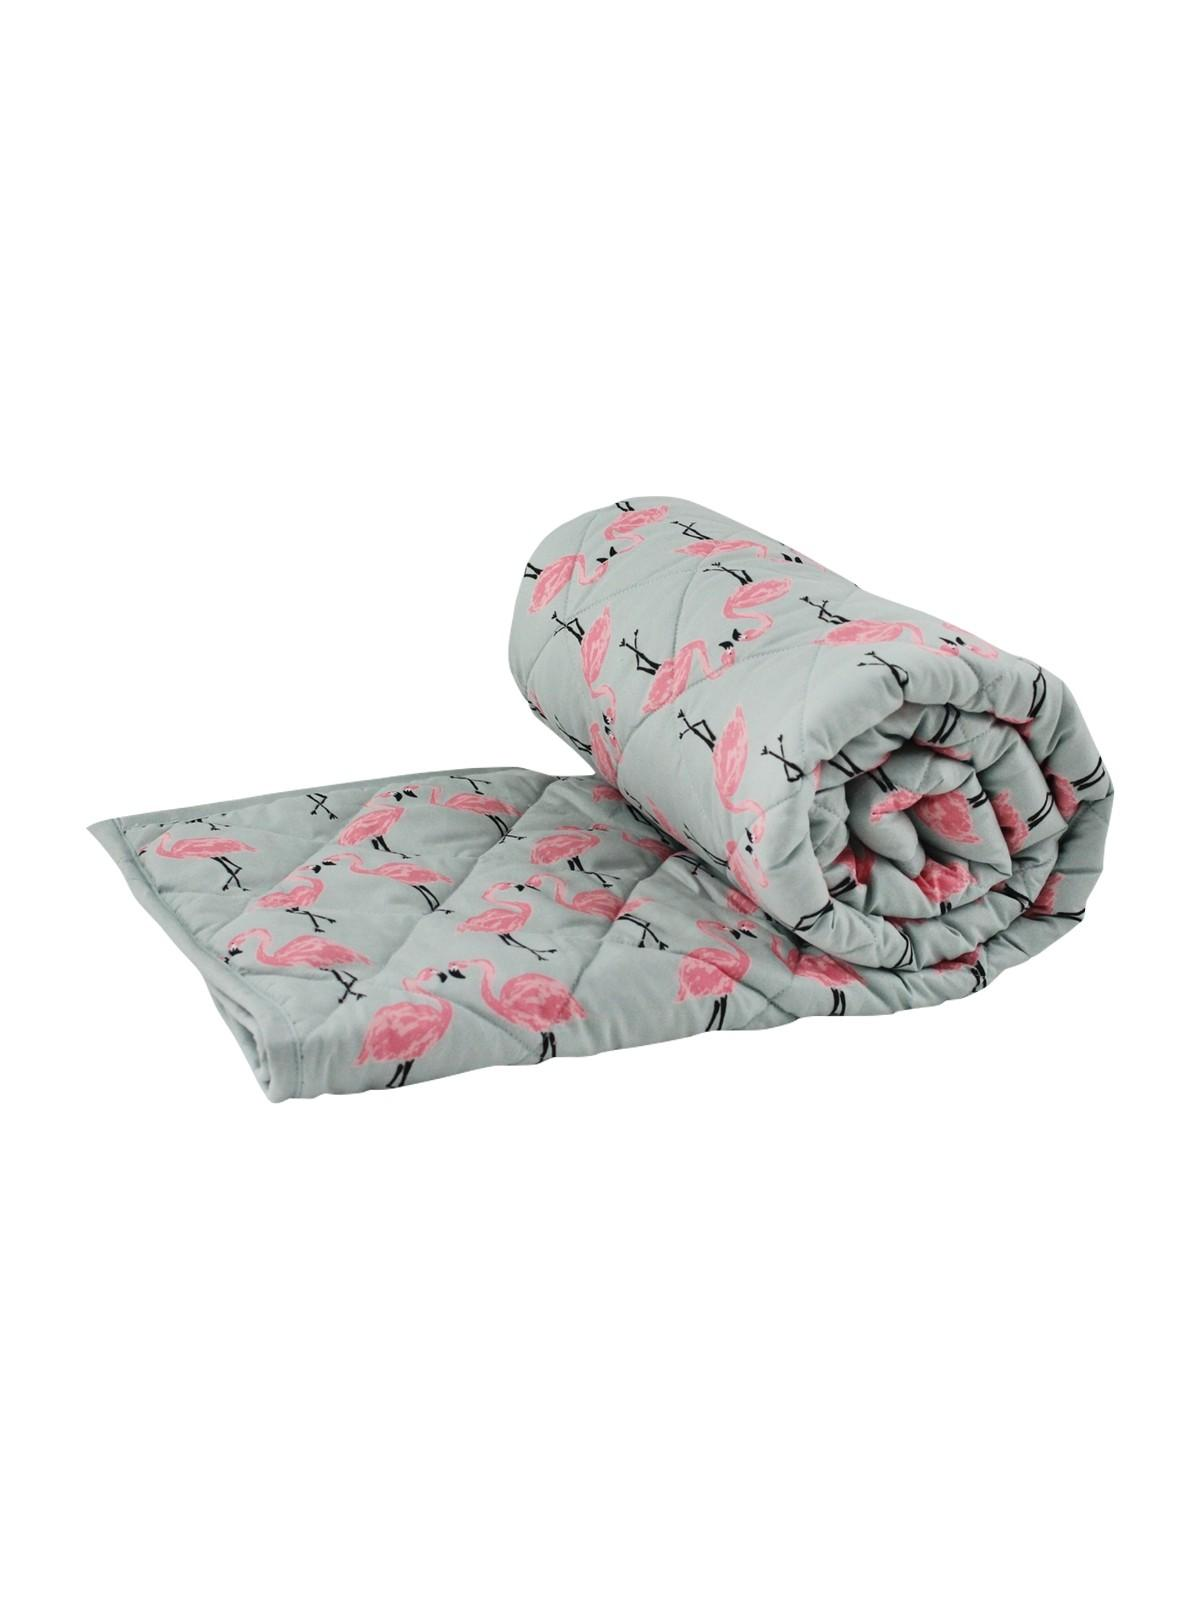 Quilted Flamingo Throw Pink Ponden Home